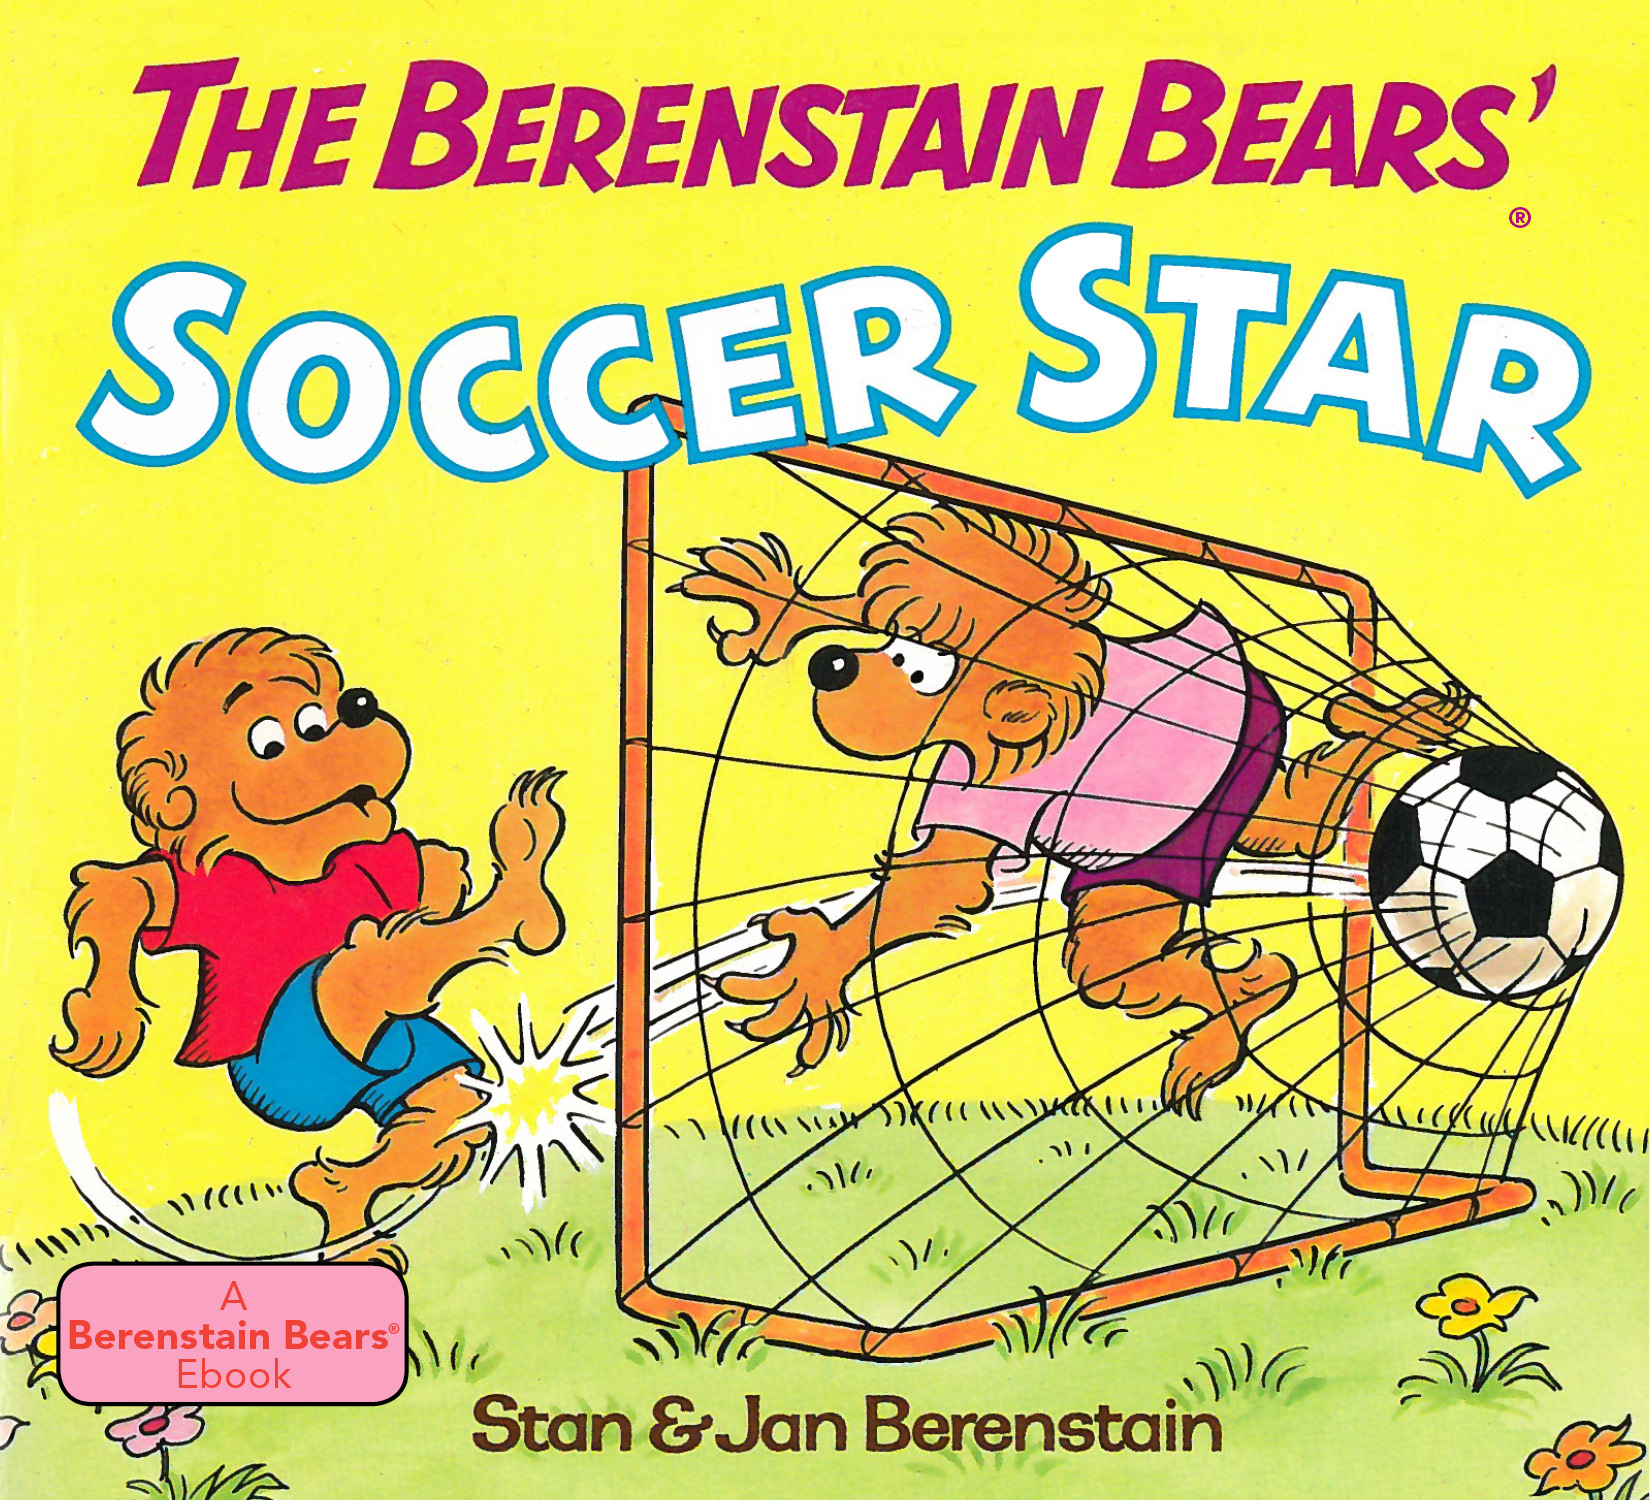 The Berenstain Bears' Soccer Star